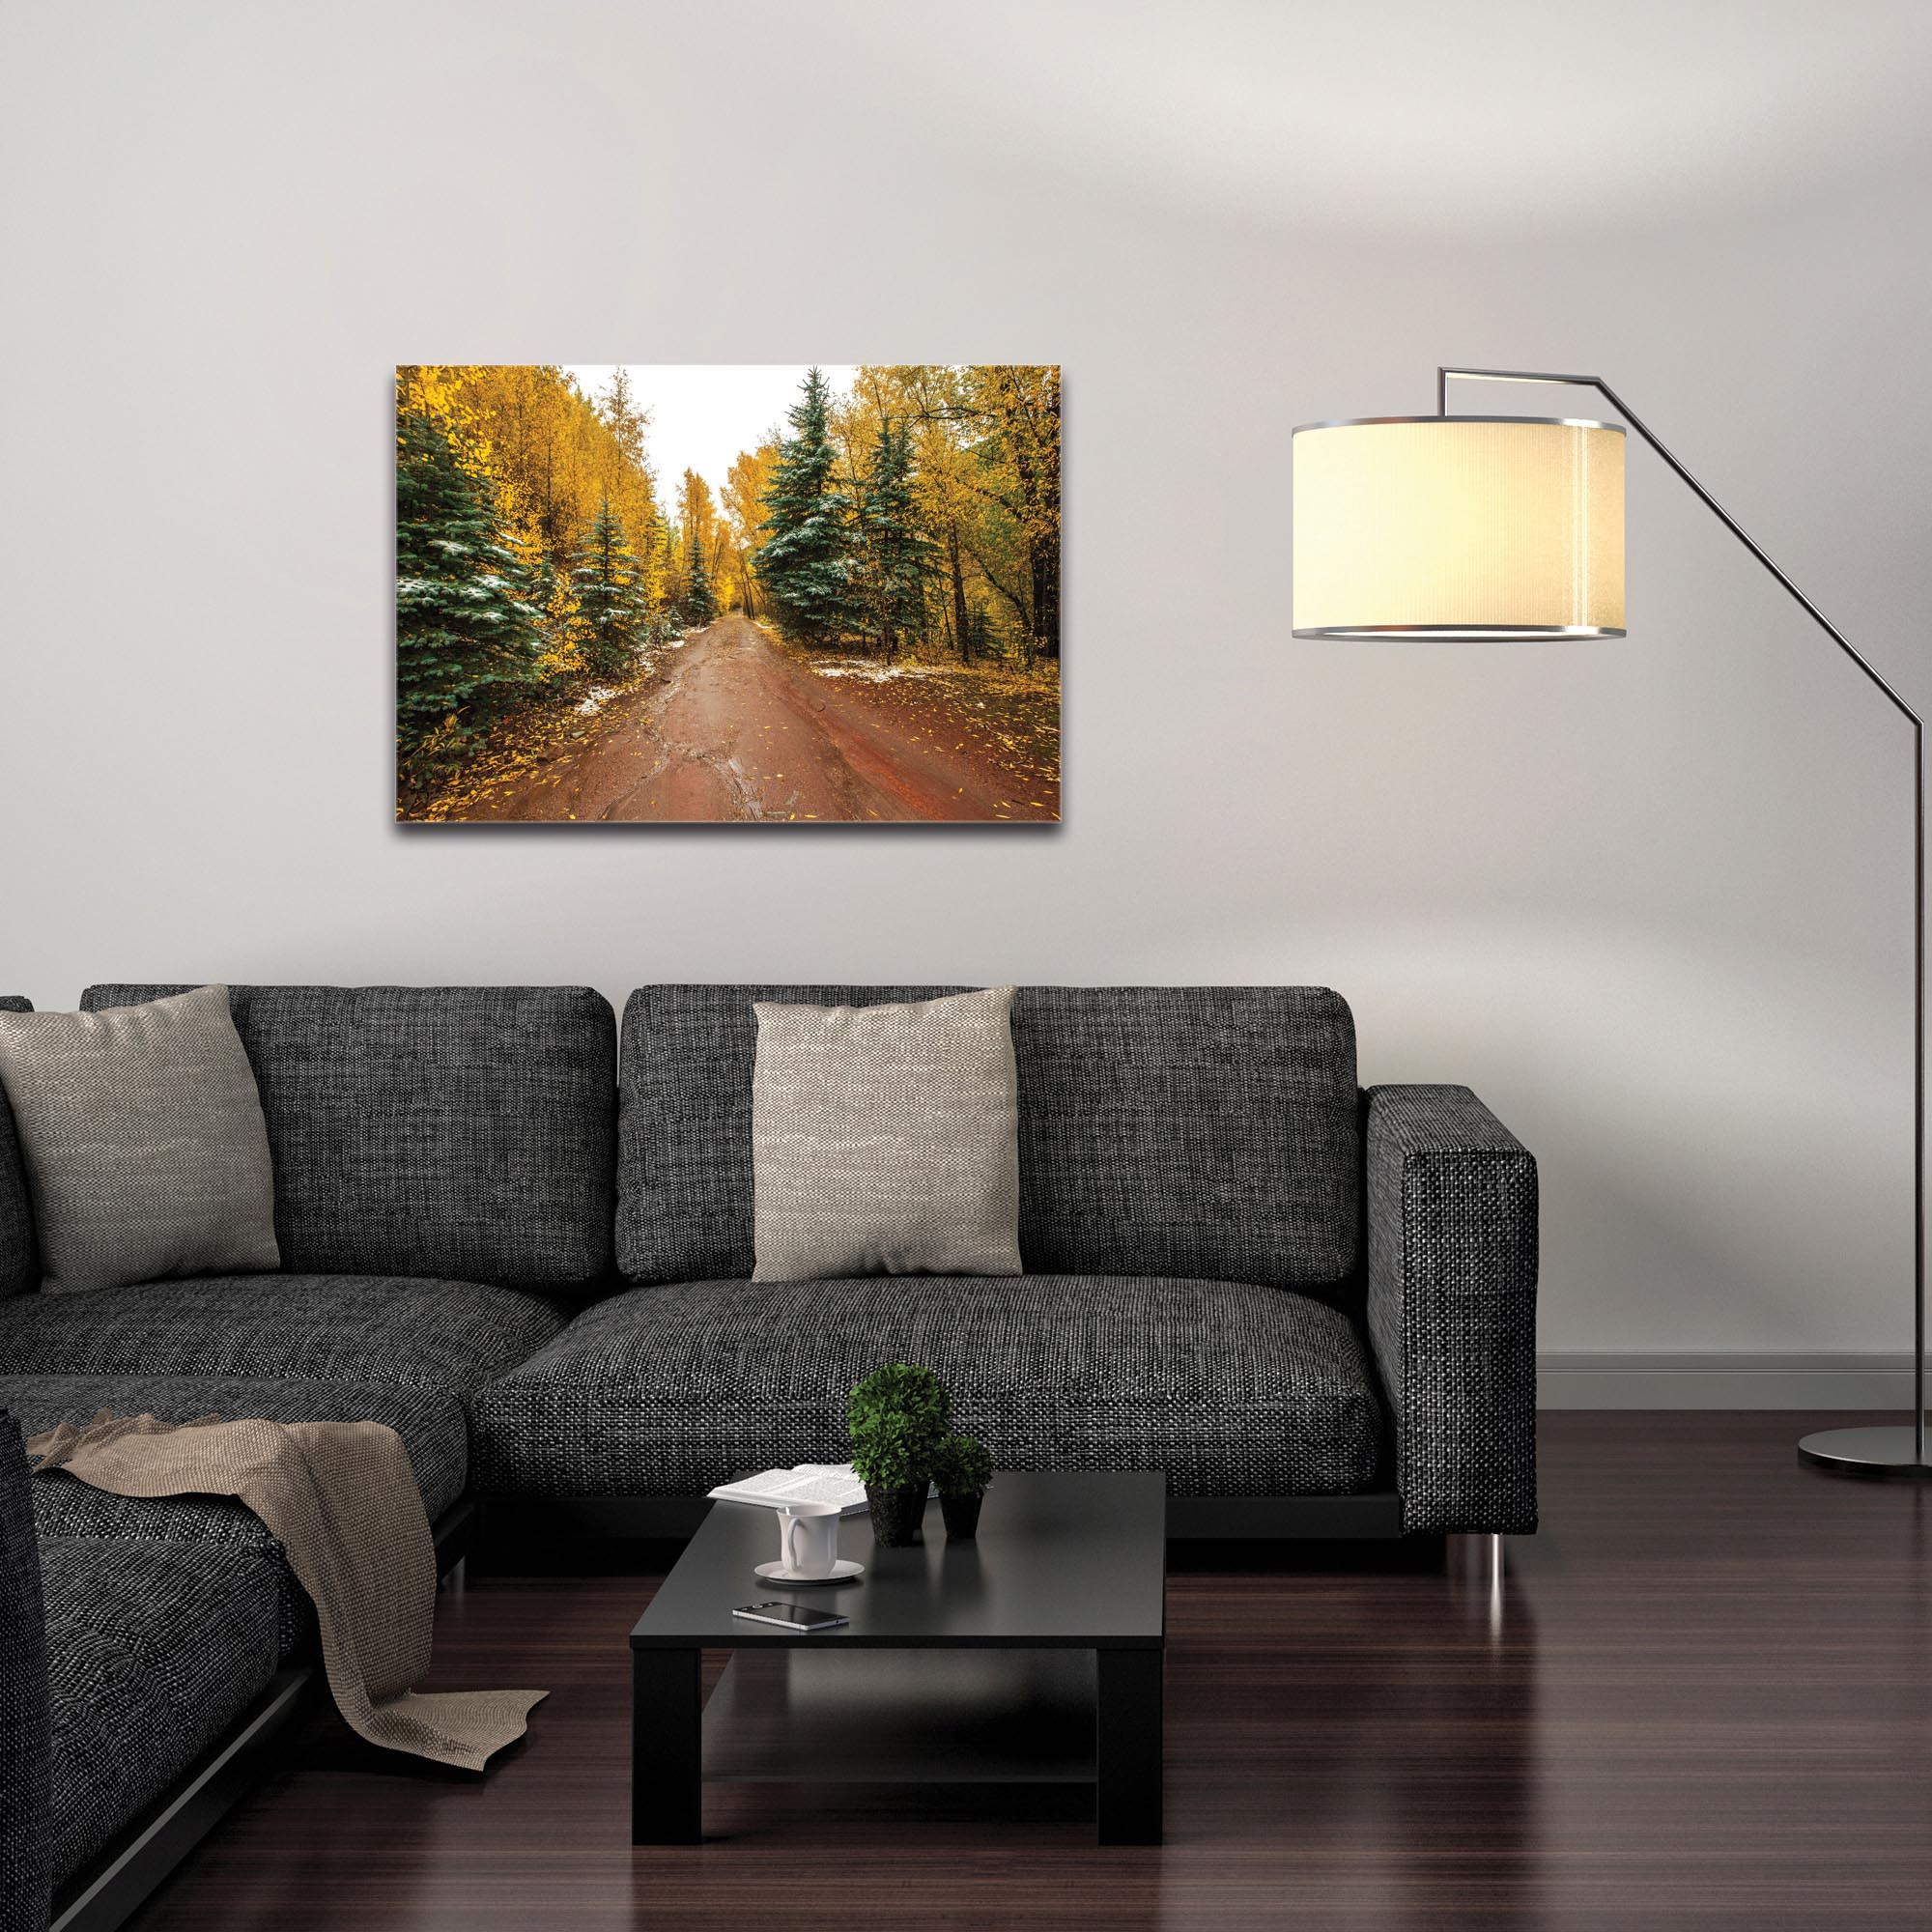 Landscape Photography 'Road Less Traveled' - Autumn Trees Art on Metal or Plexiglass - Image 3